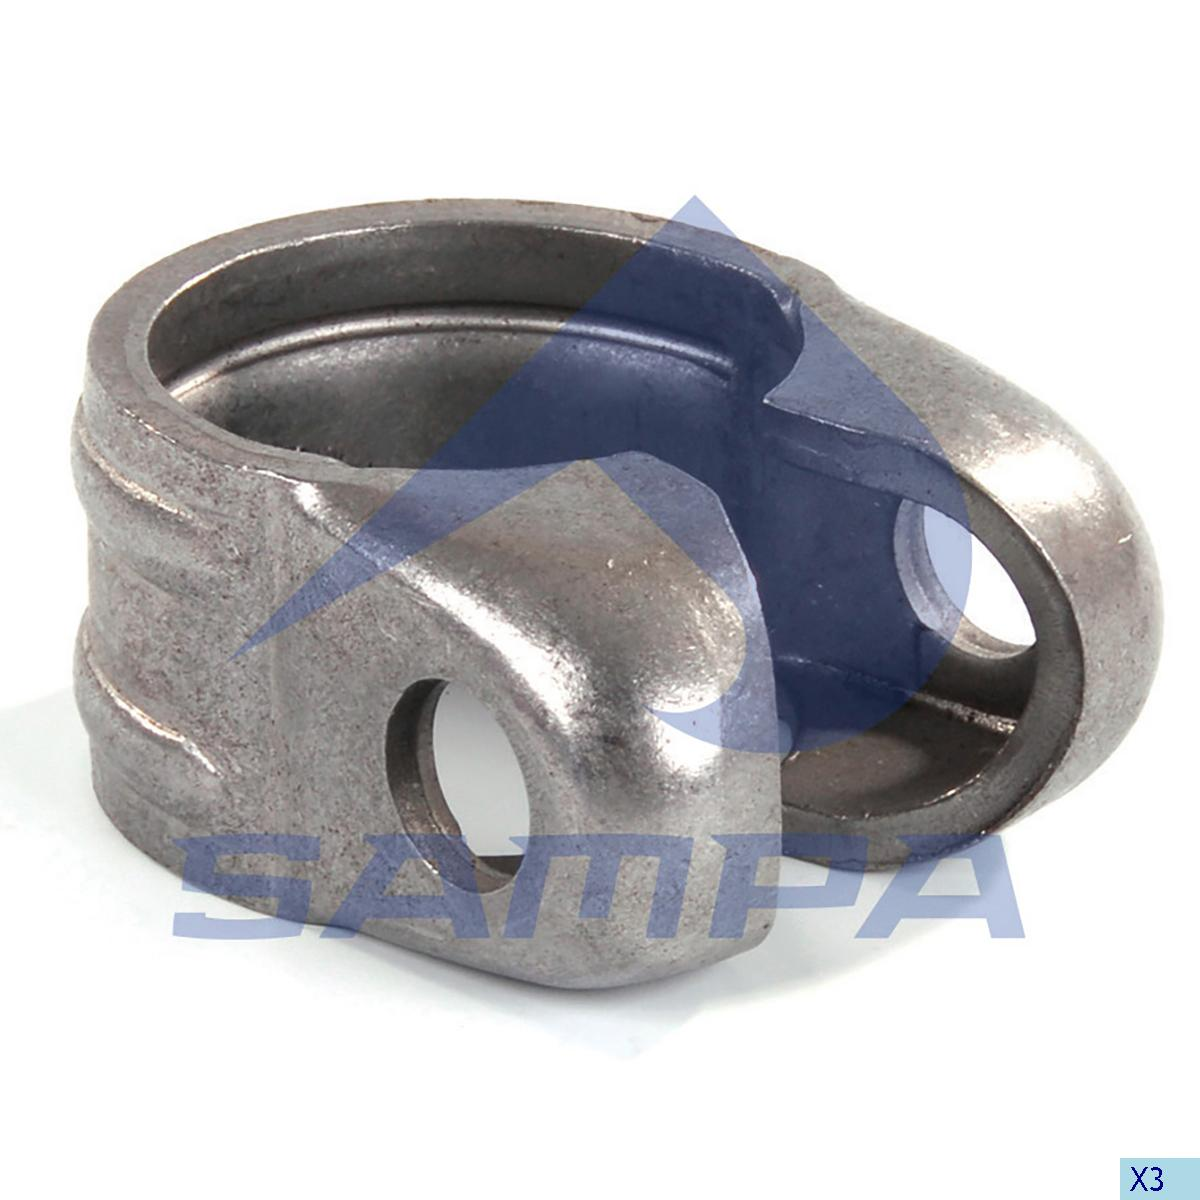 Clamp, Drag Link, Iveco, Steering